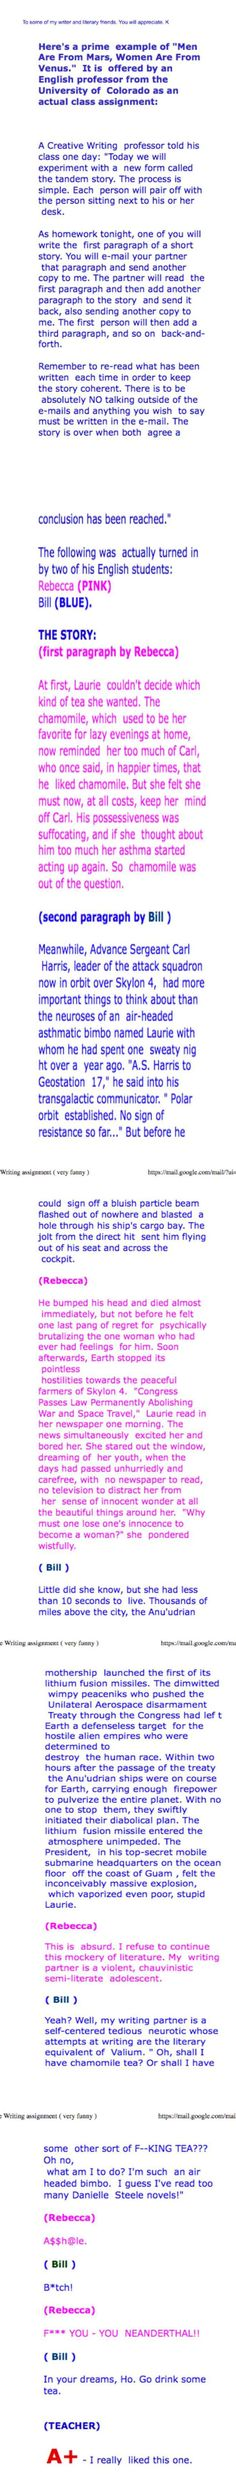 The guy's version has so much more imagination...love this story :-)